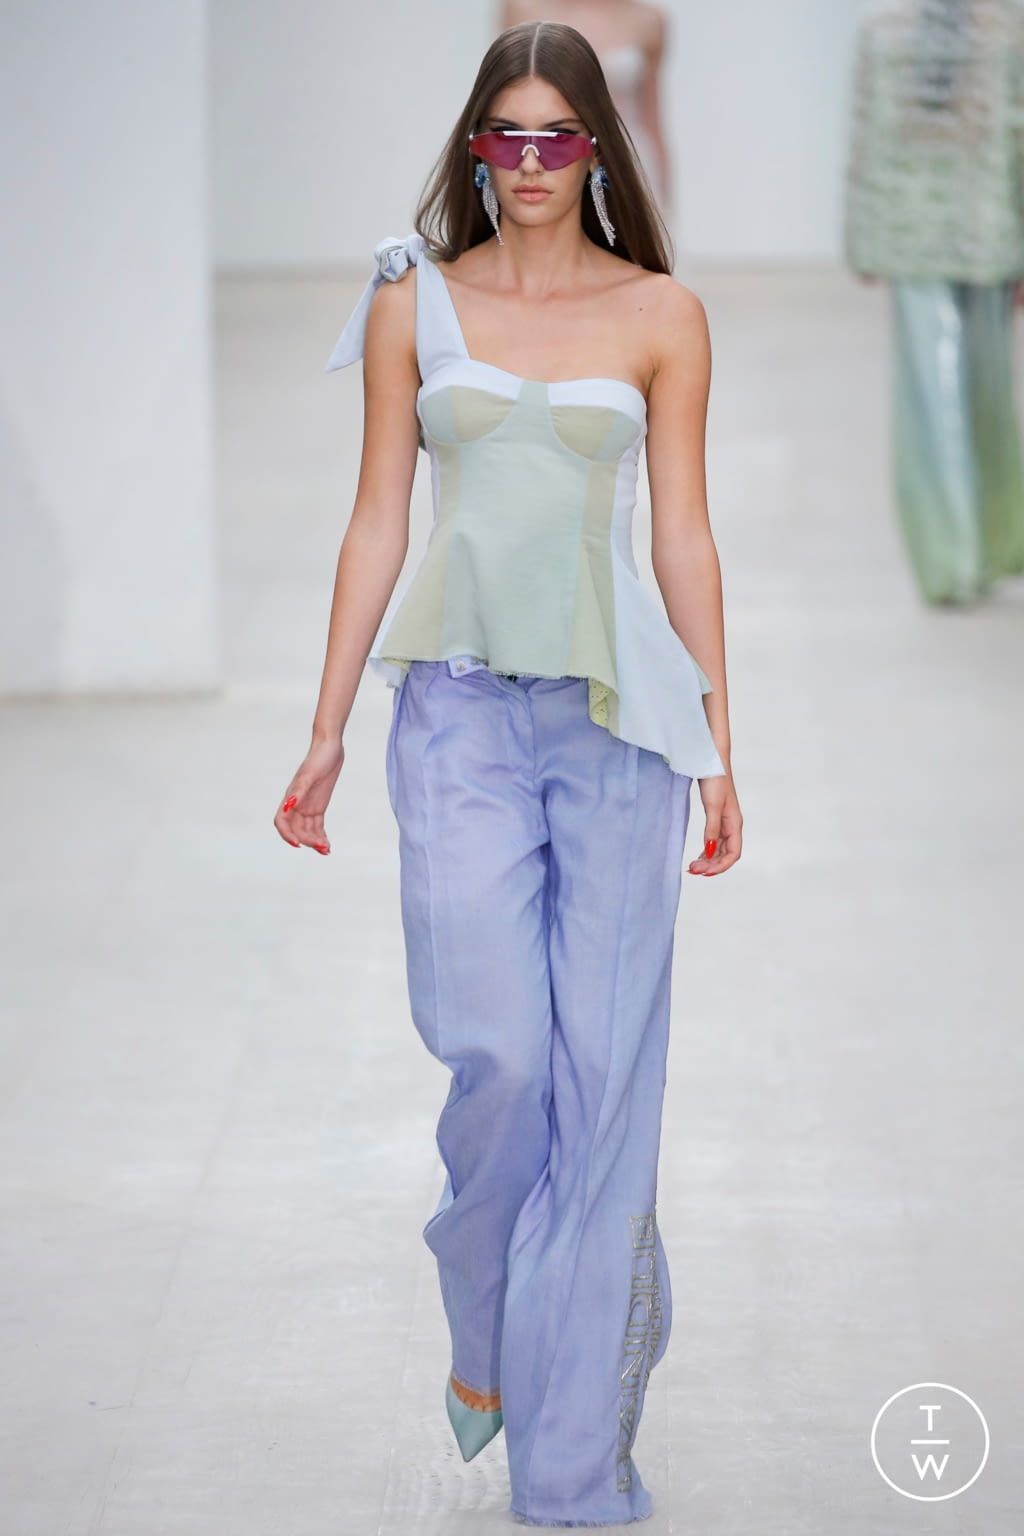 Fashion Week London Spring/Summer 2020 look 6 from the Roberta Einer collection 女装